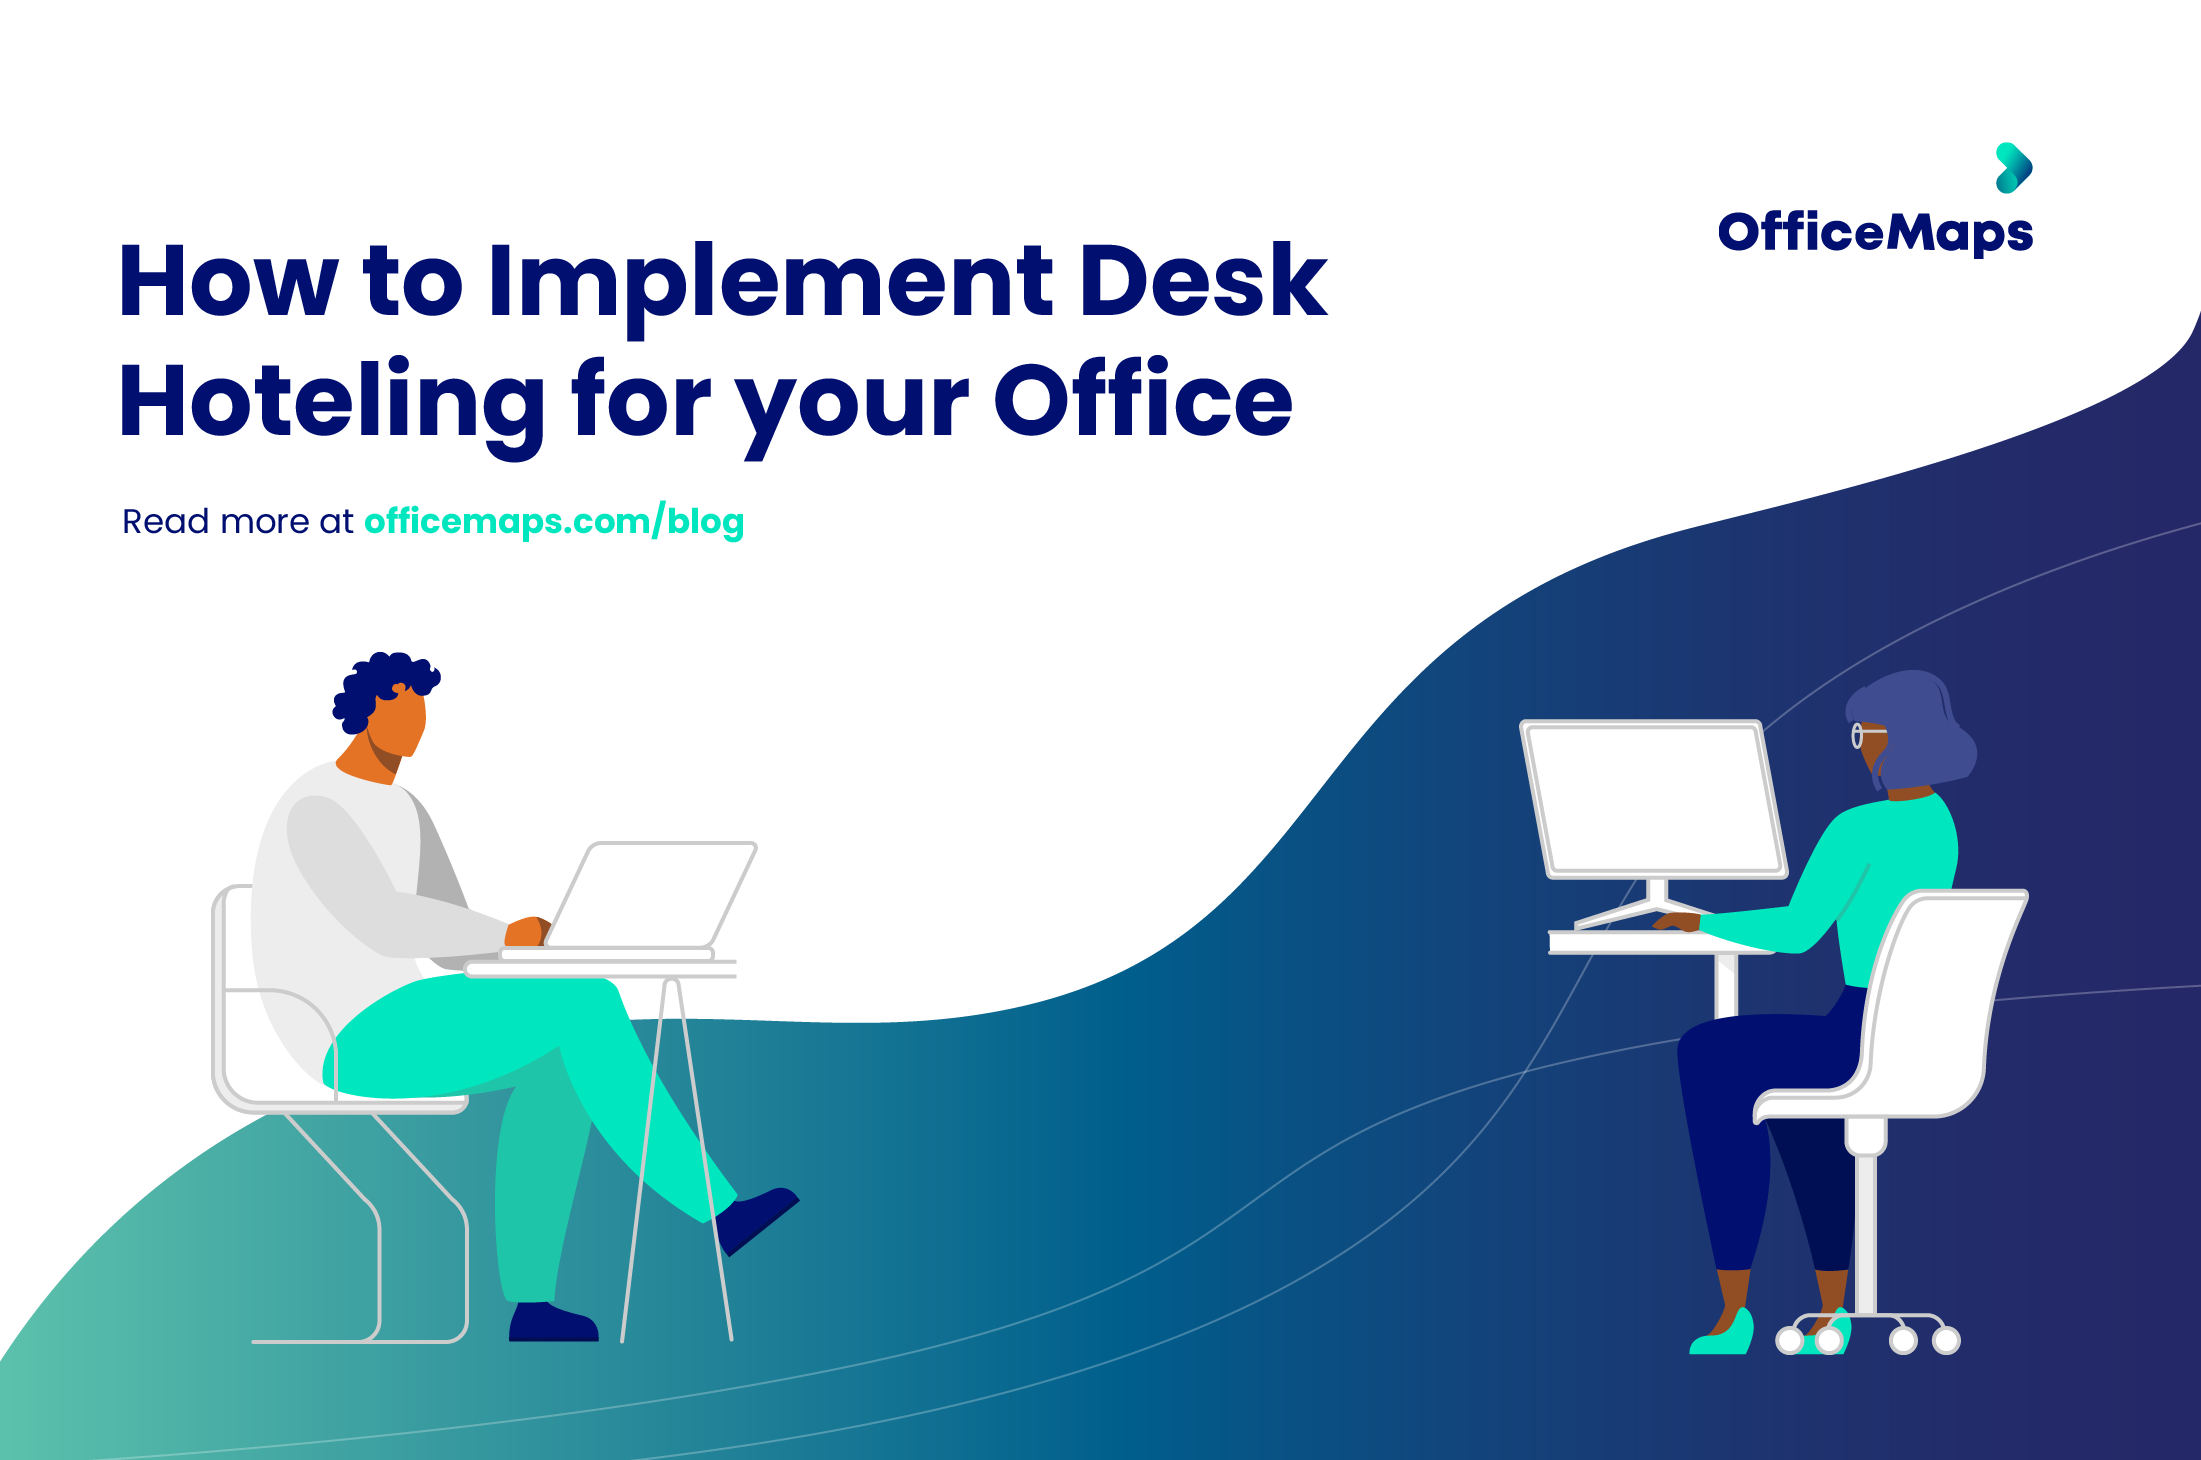 implement desk hoteling and hotdesking for your office with smart booking system software